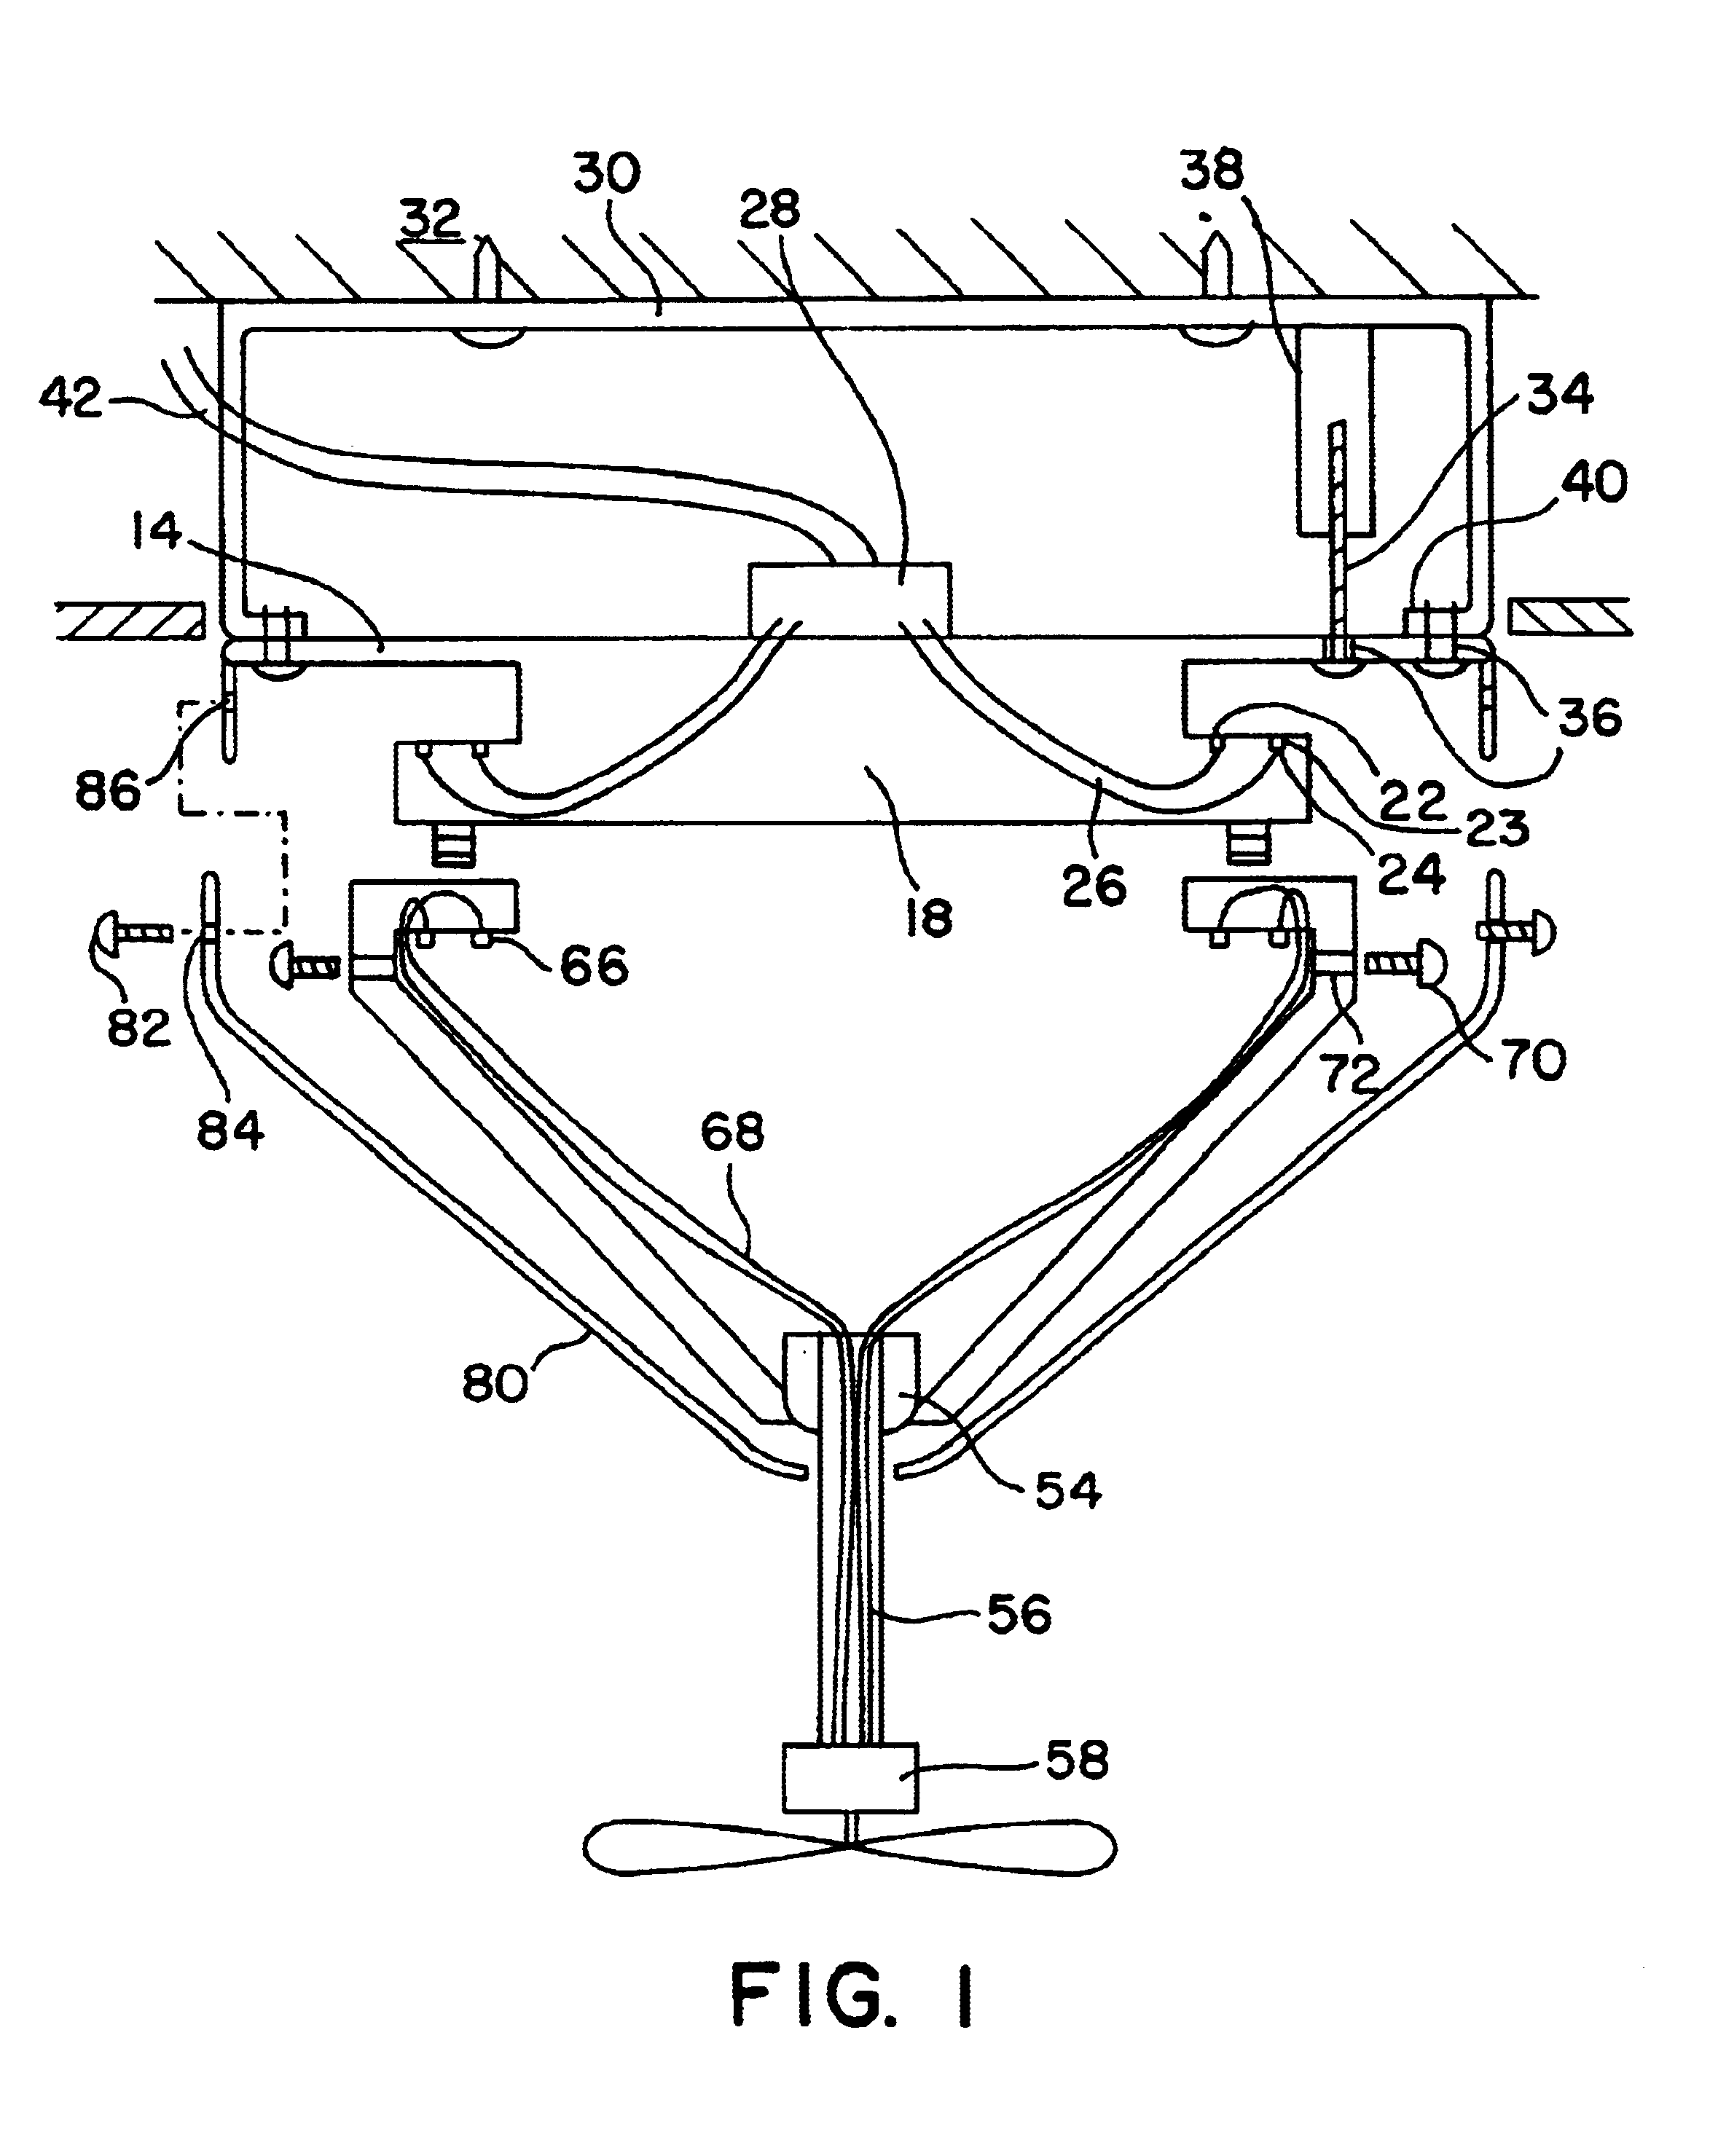 US06634901 20031021 D00001 patent us6634901 quick connect device for electrical fixture encon ceiling fan wiring diagram at fashall.co